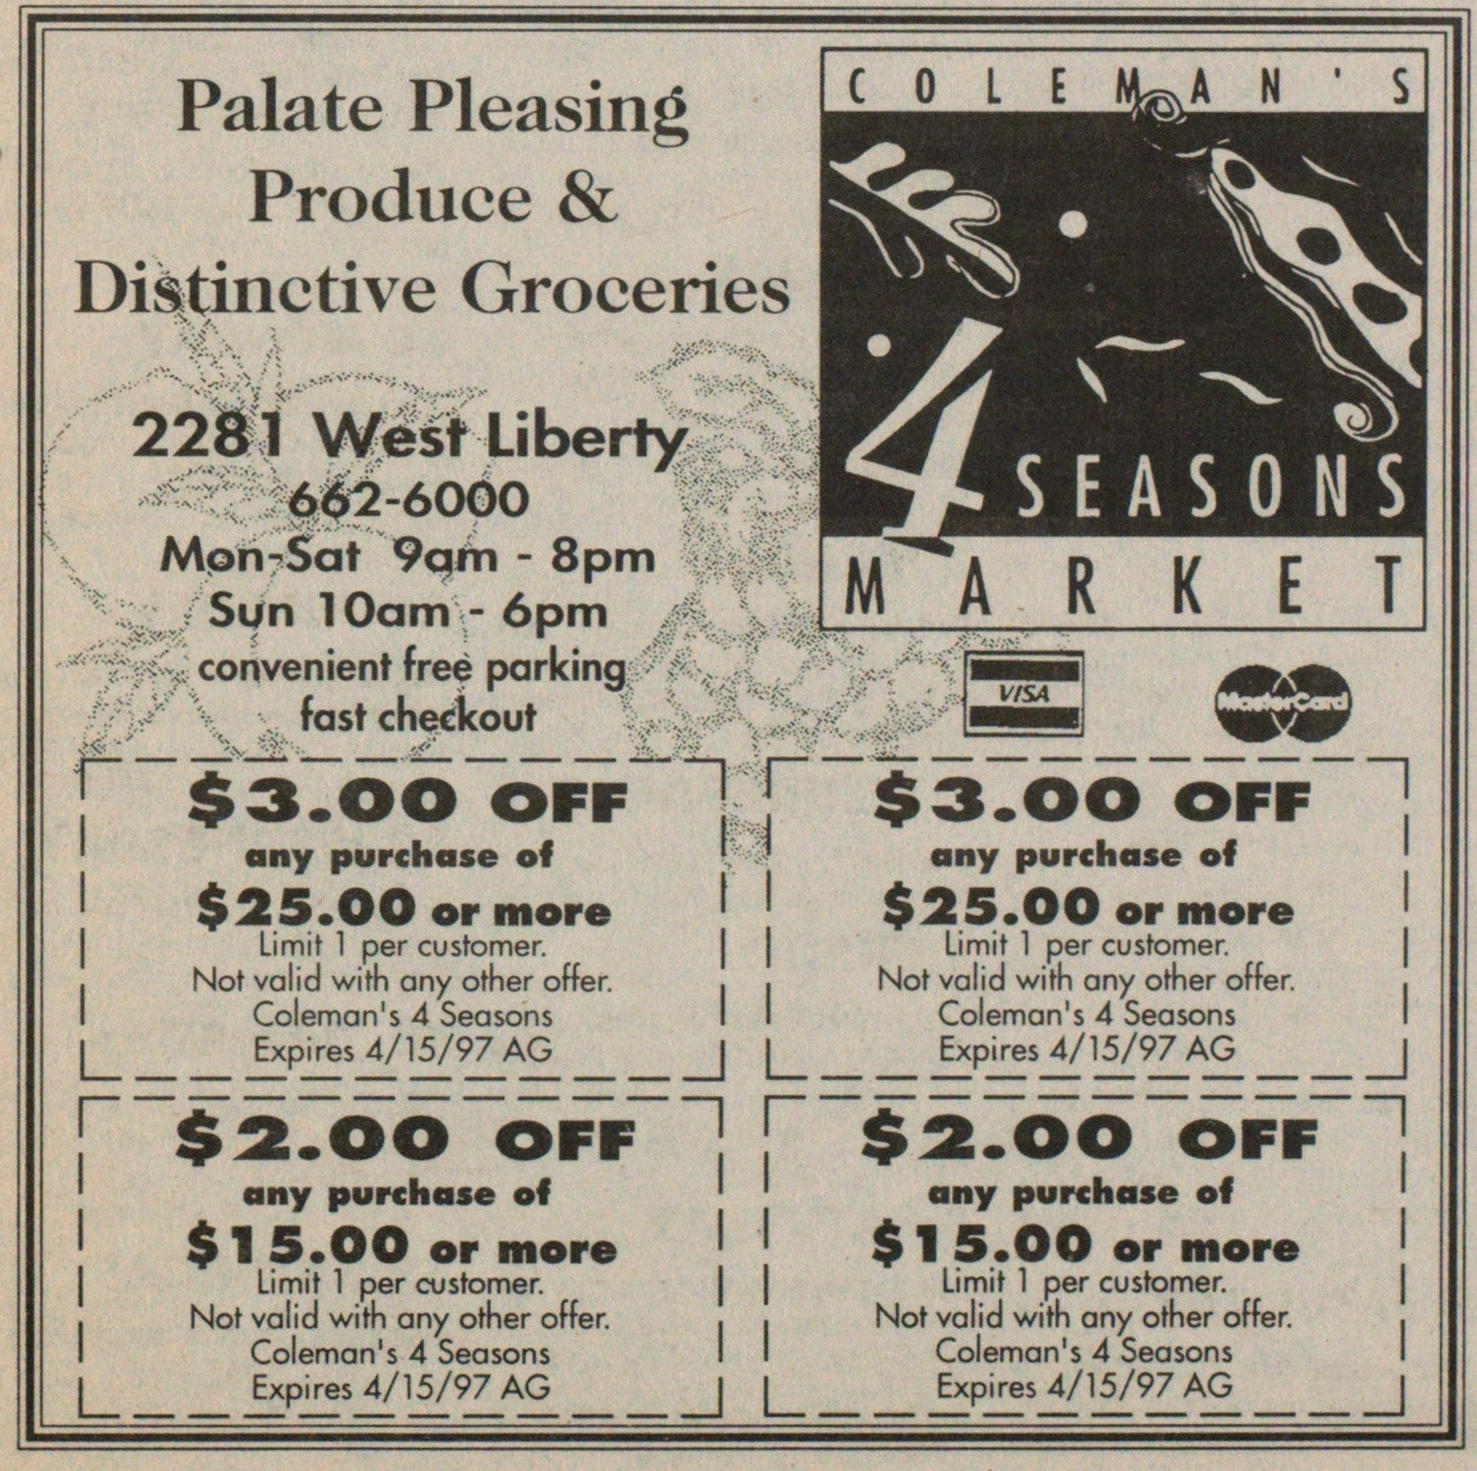 Palate Pleasing Produce & Distinctive Groceries image